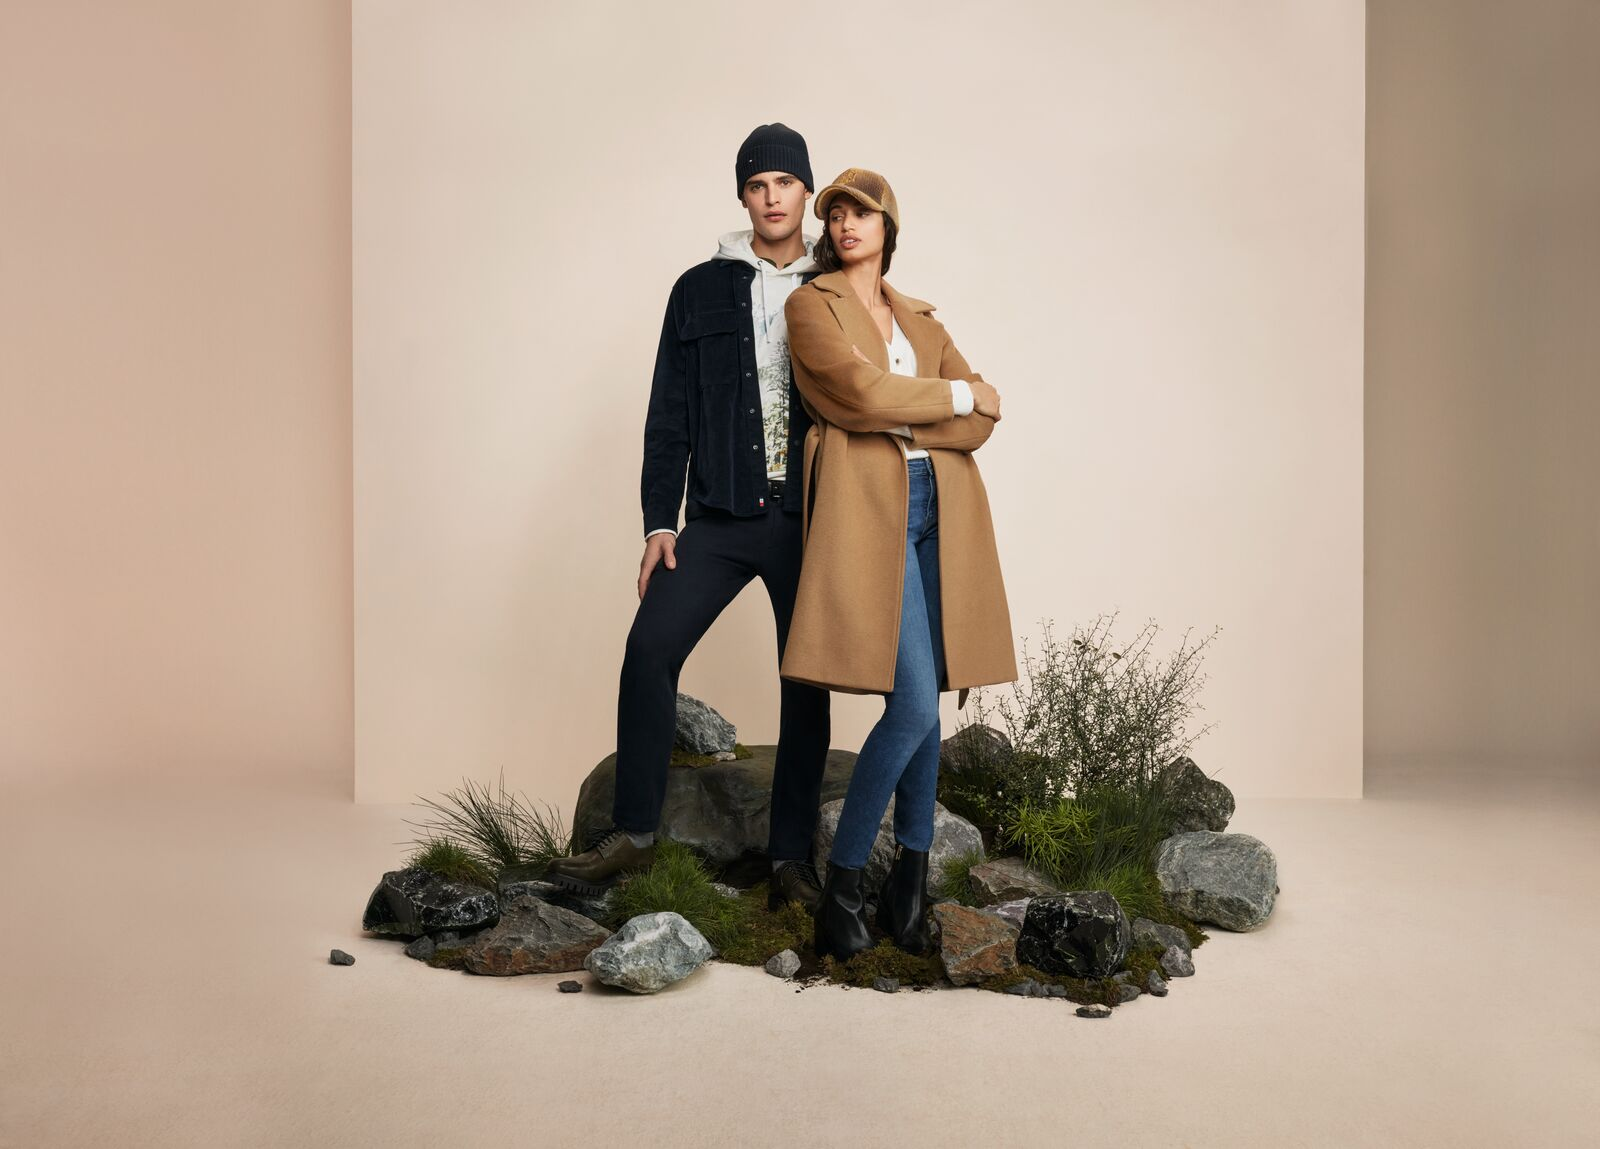 Male and female models wearing winter clothes from Tommy Hilfiger